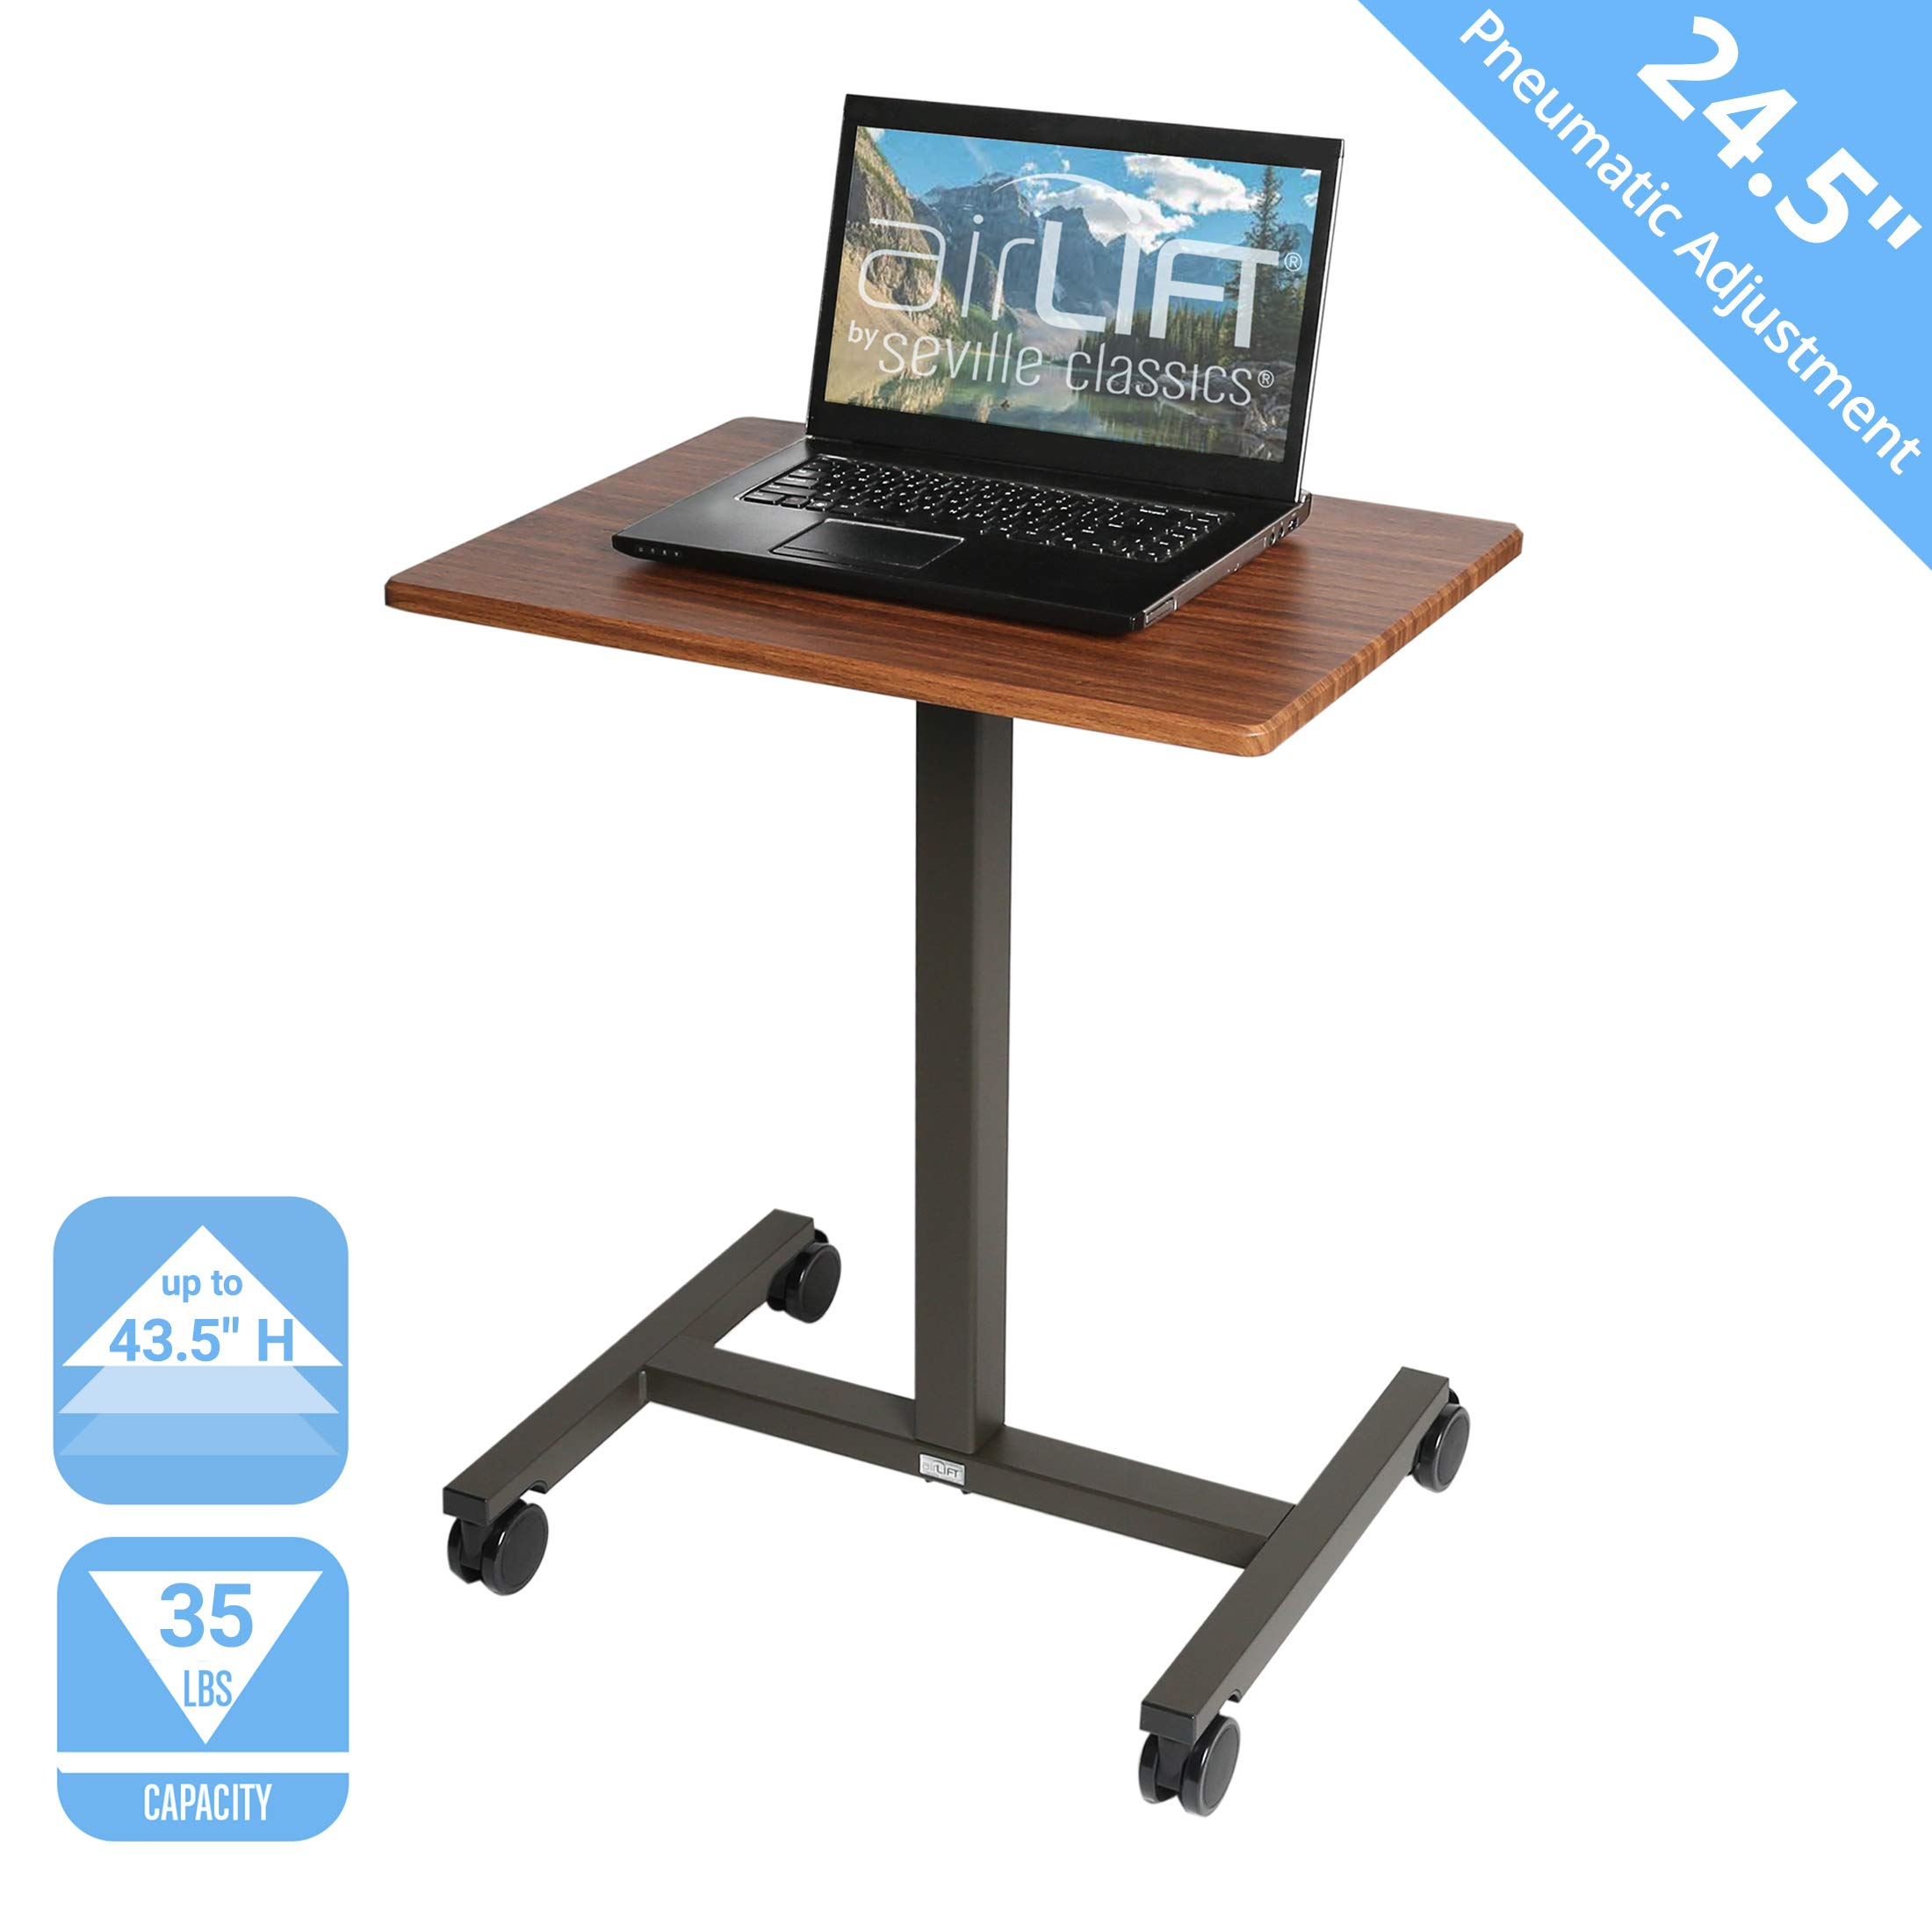 Seville Classics AIRLIFT Pneumatic Laptop Computer Mobile Desk Cart Height-Adjustable from 29.3'' to 43.5'' H, 24'', Walnut by Seville Classics